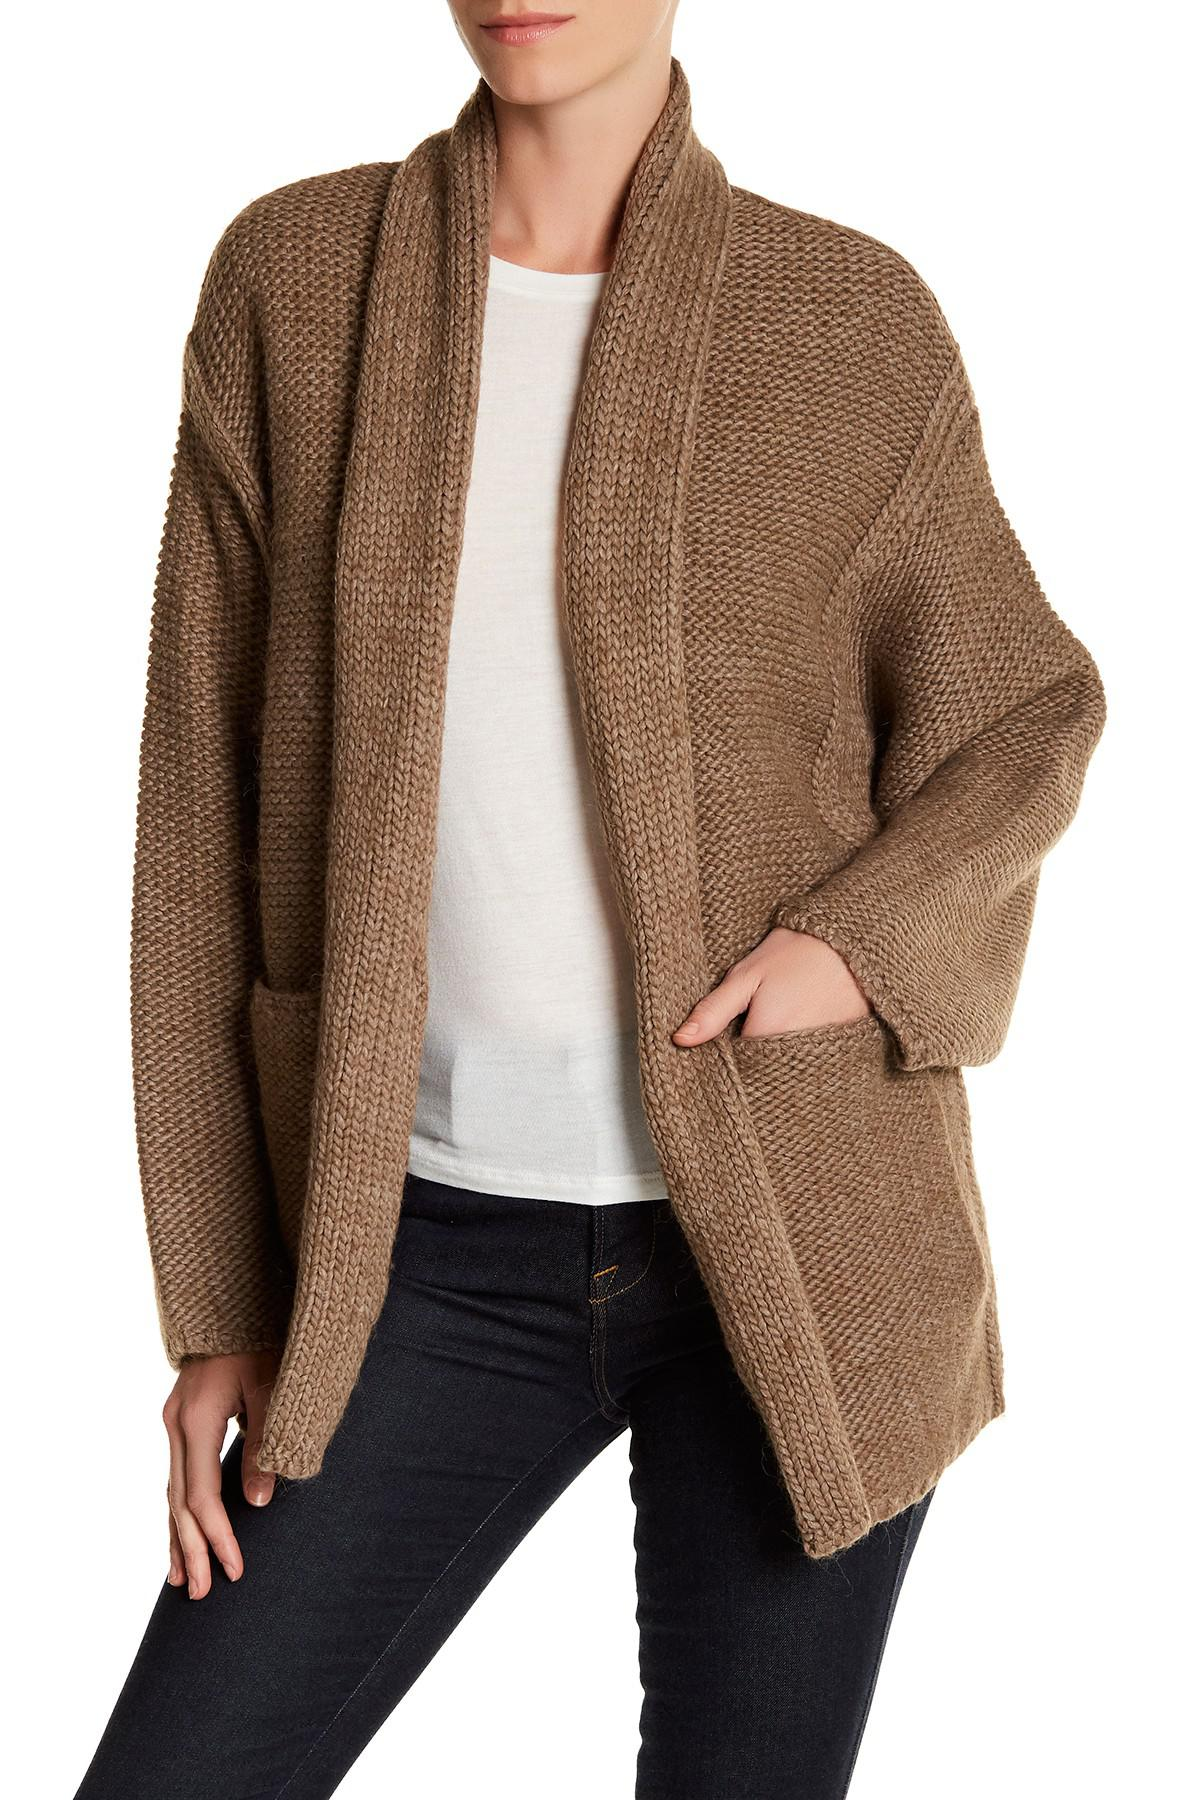 Joie Cadee Chunky Knit Cardigan in Brown | Lyst